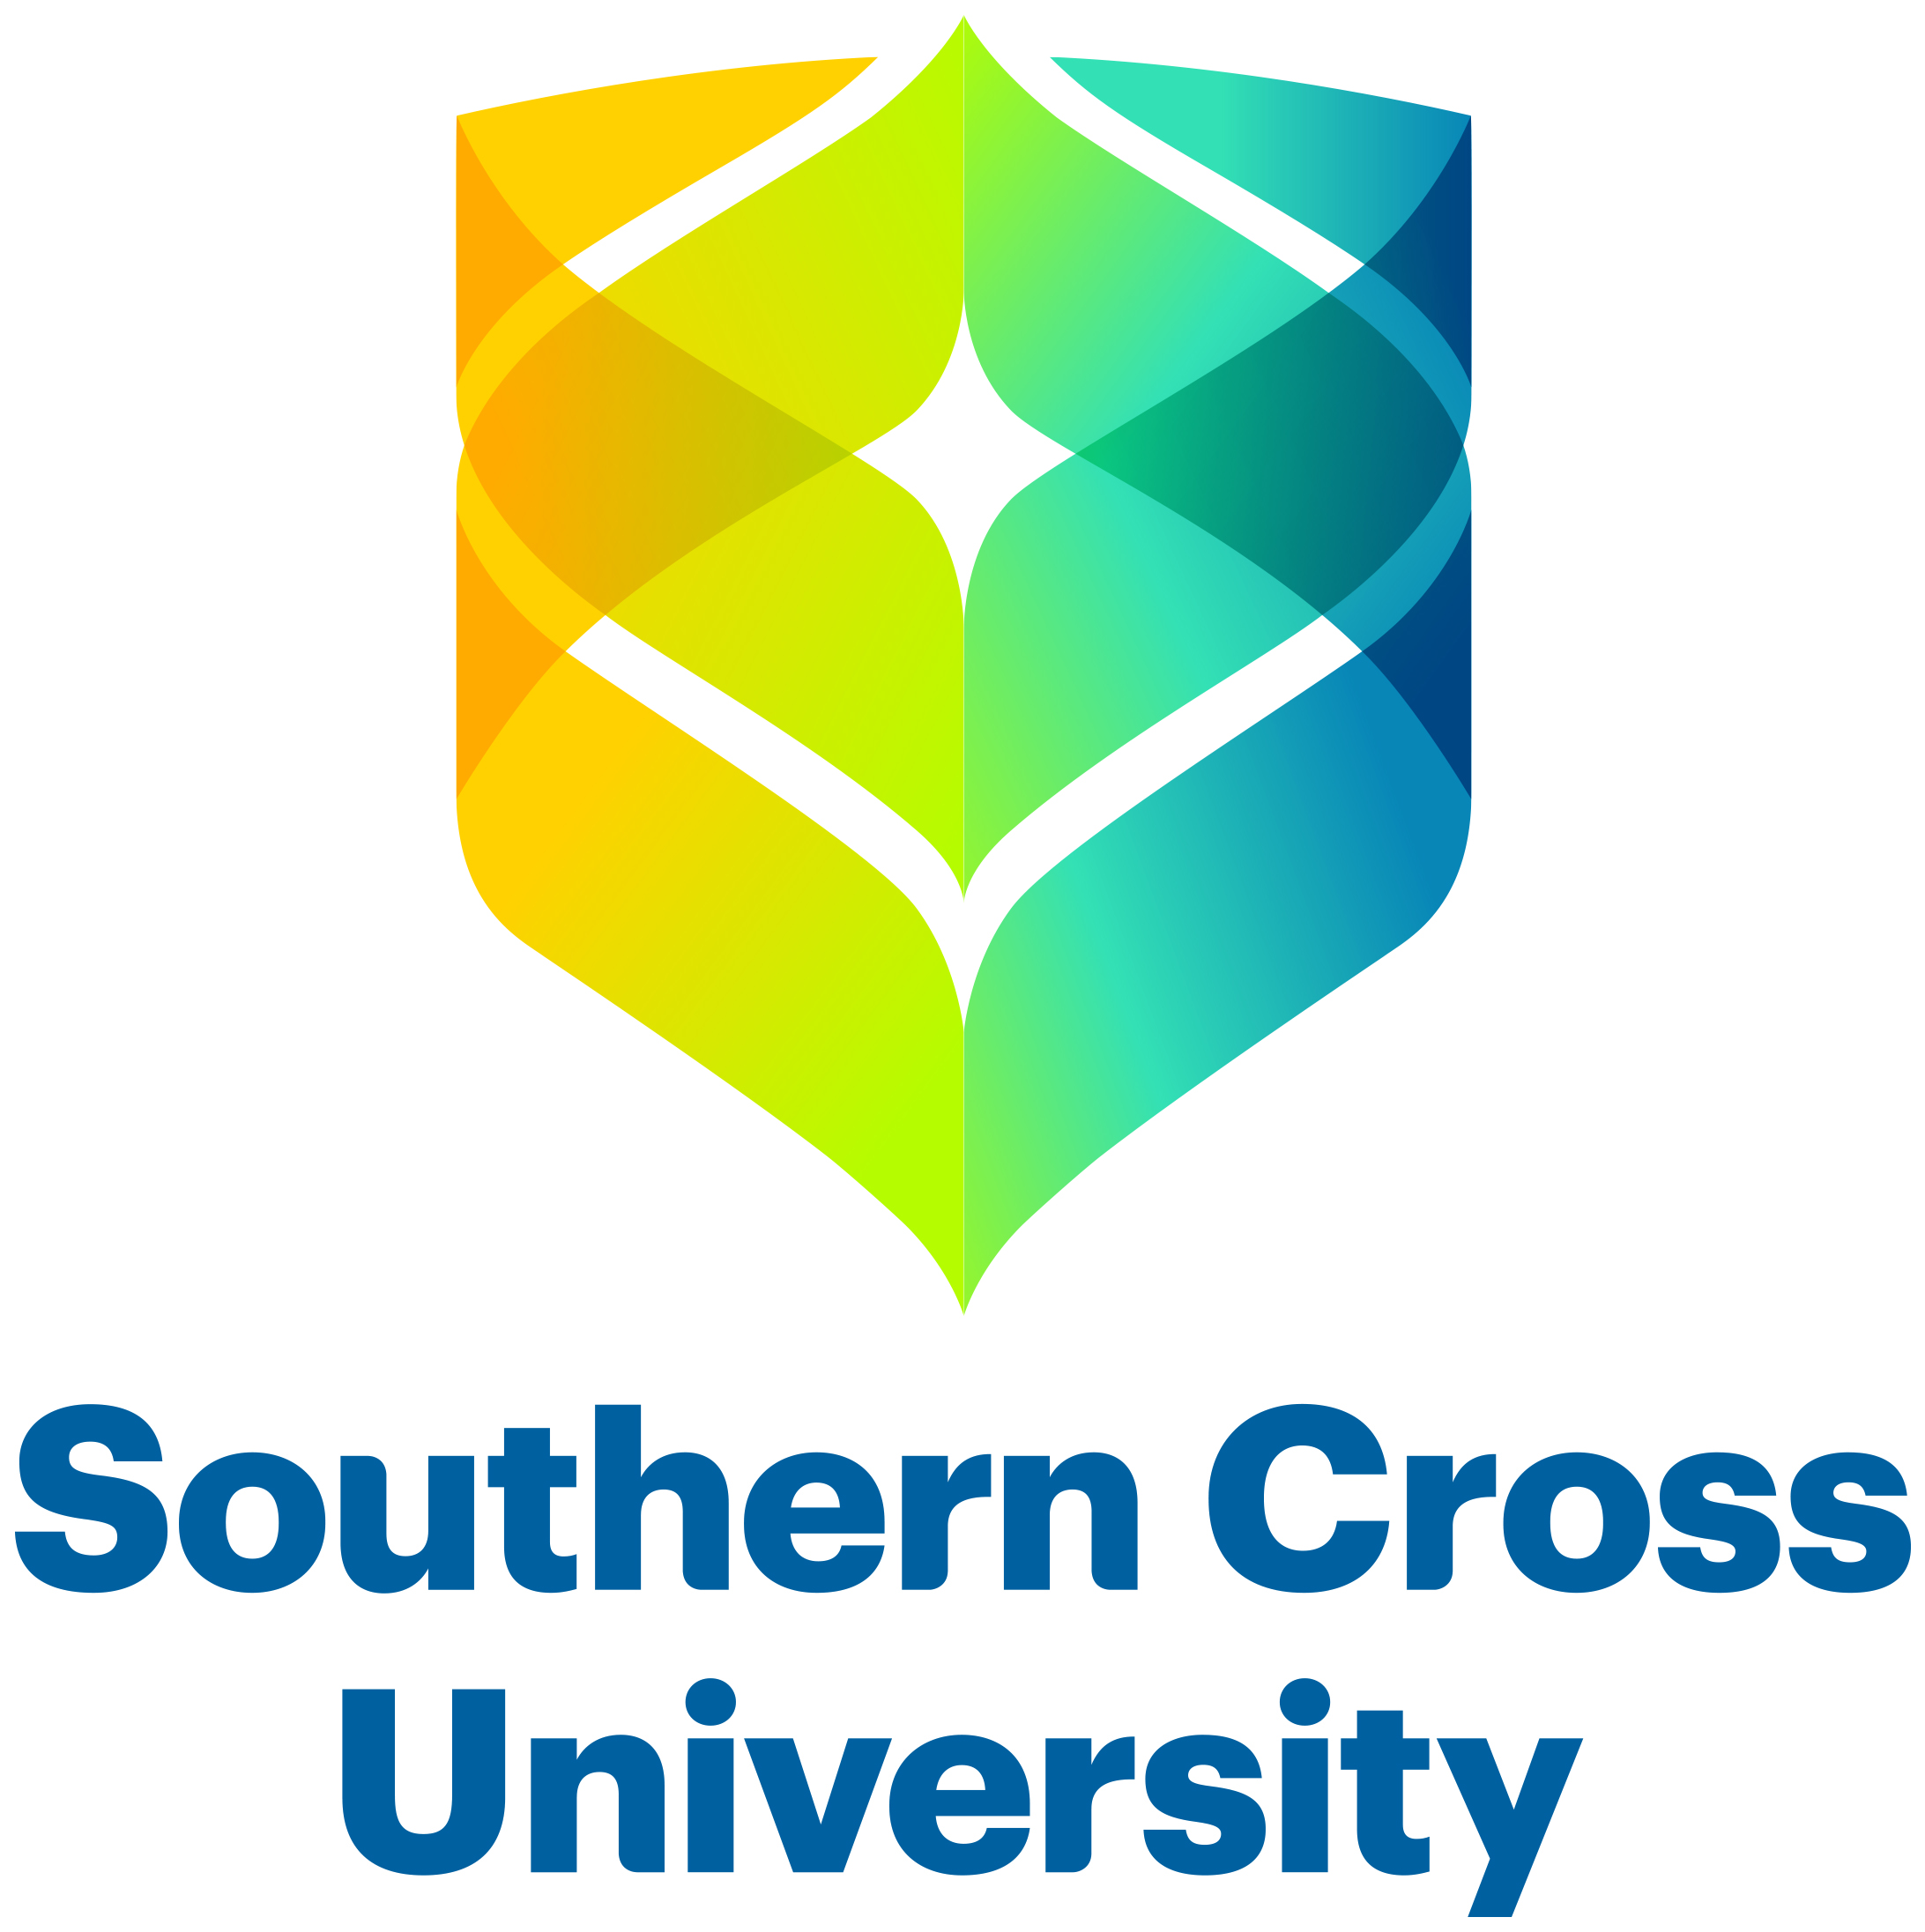 Southern Cross University - Bachelor of Information Technology